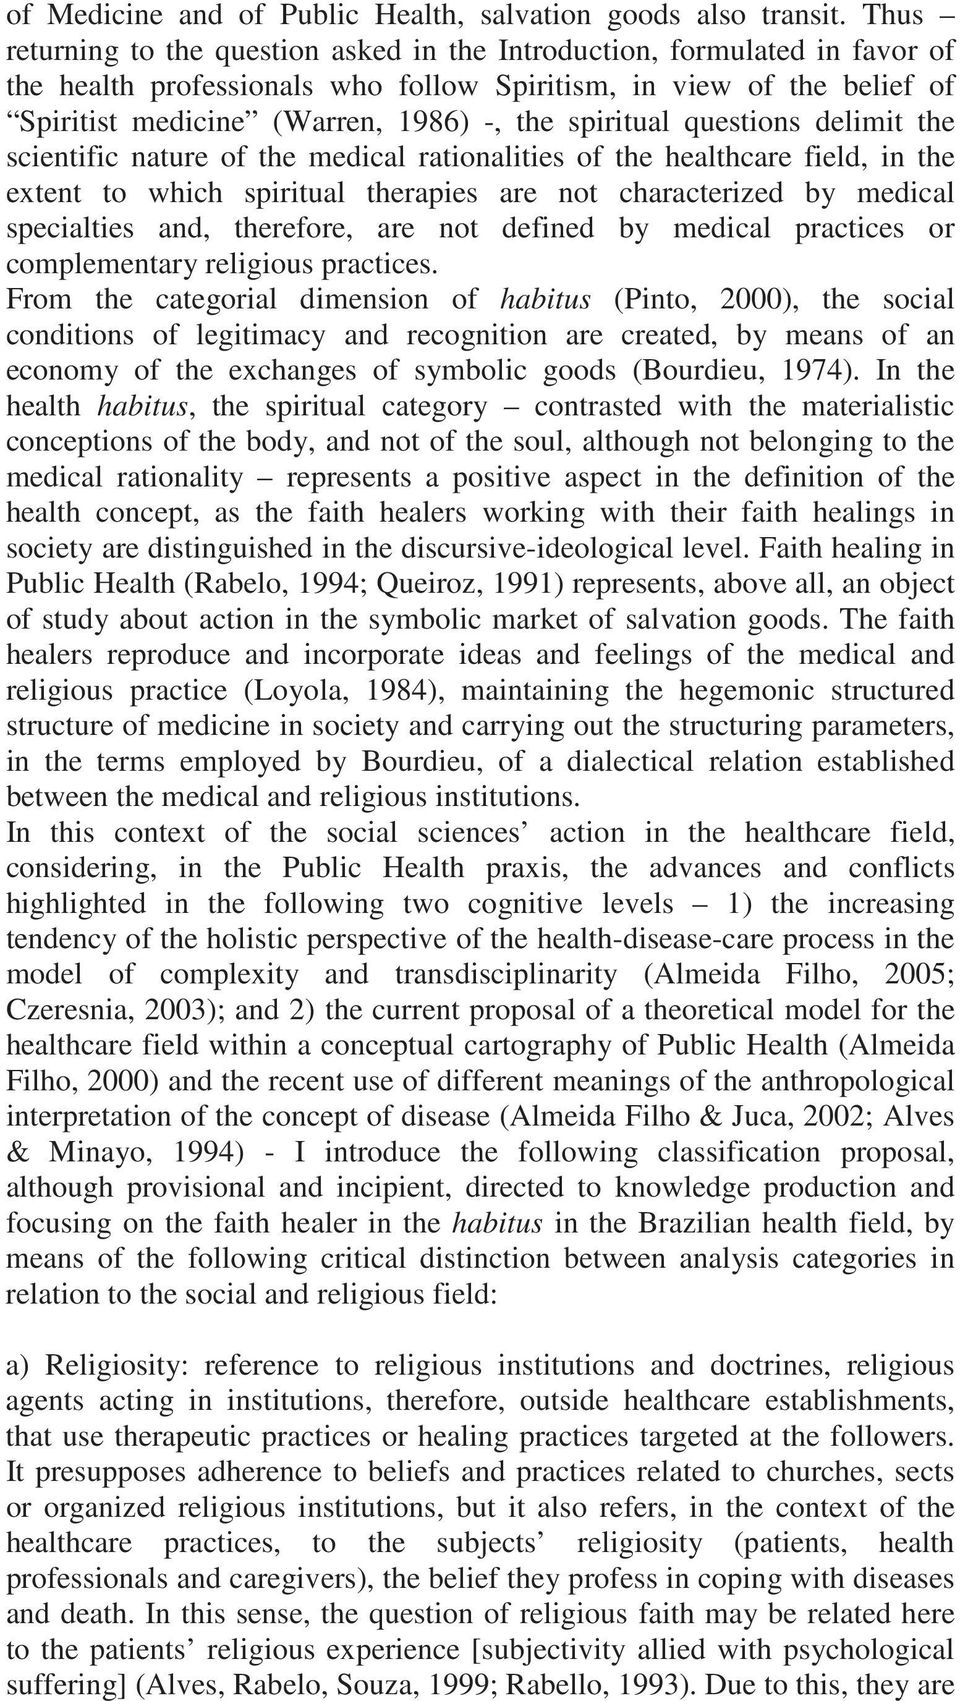 spiritual questions delimit the scientific nature of the medical rationalities of the healthcare field, in the extent to which spiritual therapies are not characterized by medical specialties and,